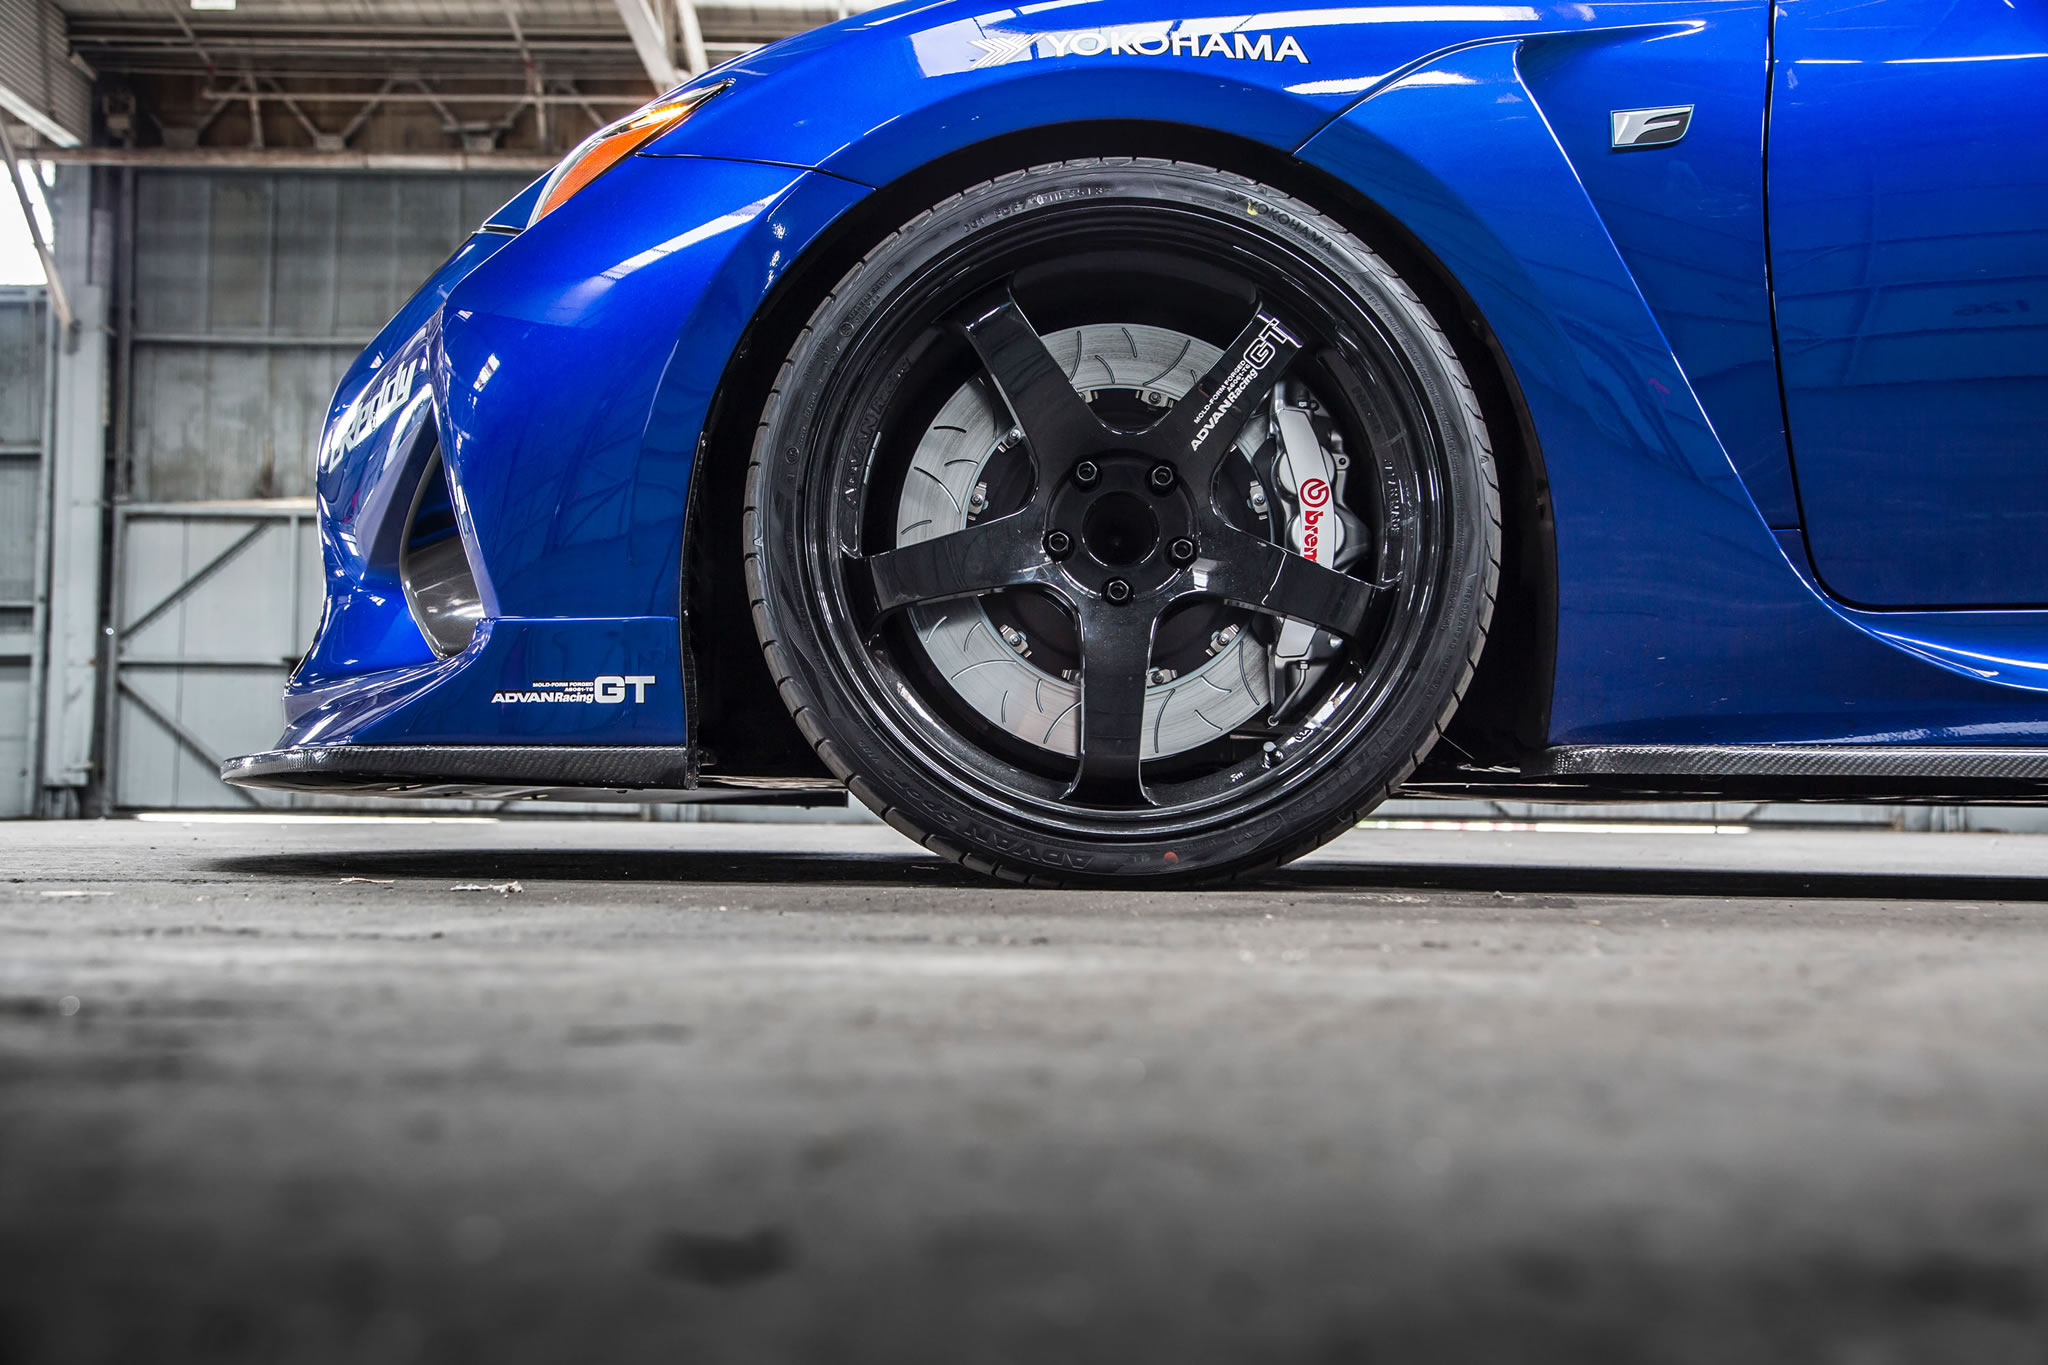 2015 Lexus Rc F By Gordon Ting Detail Photo Advan Wheel